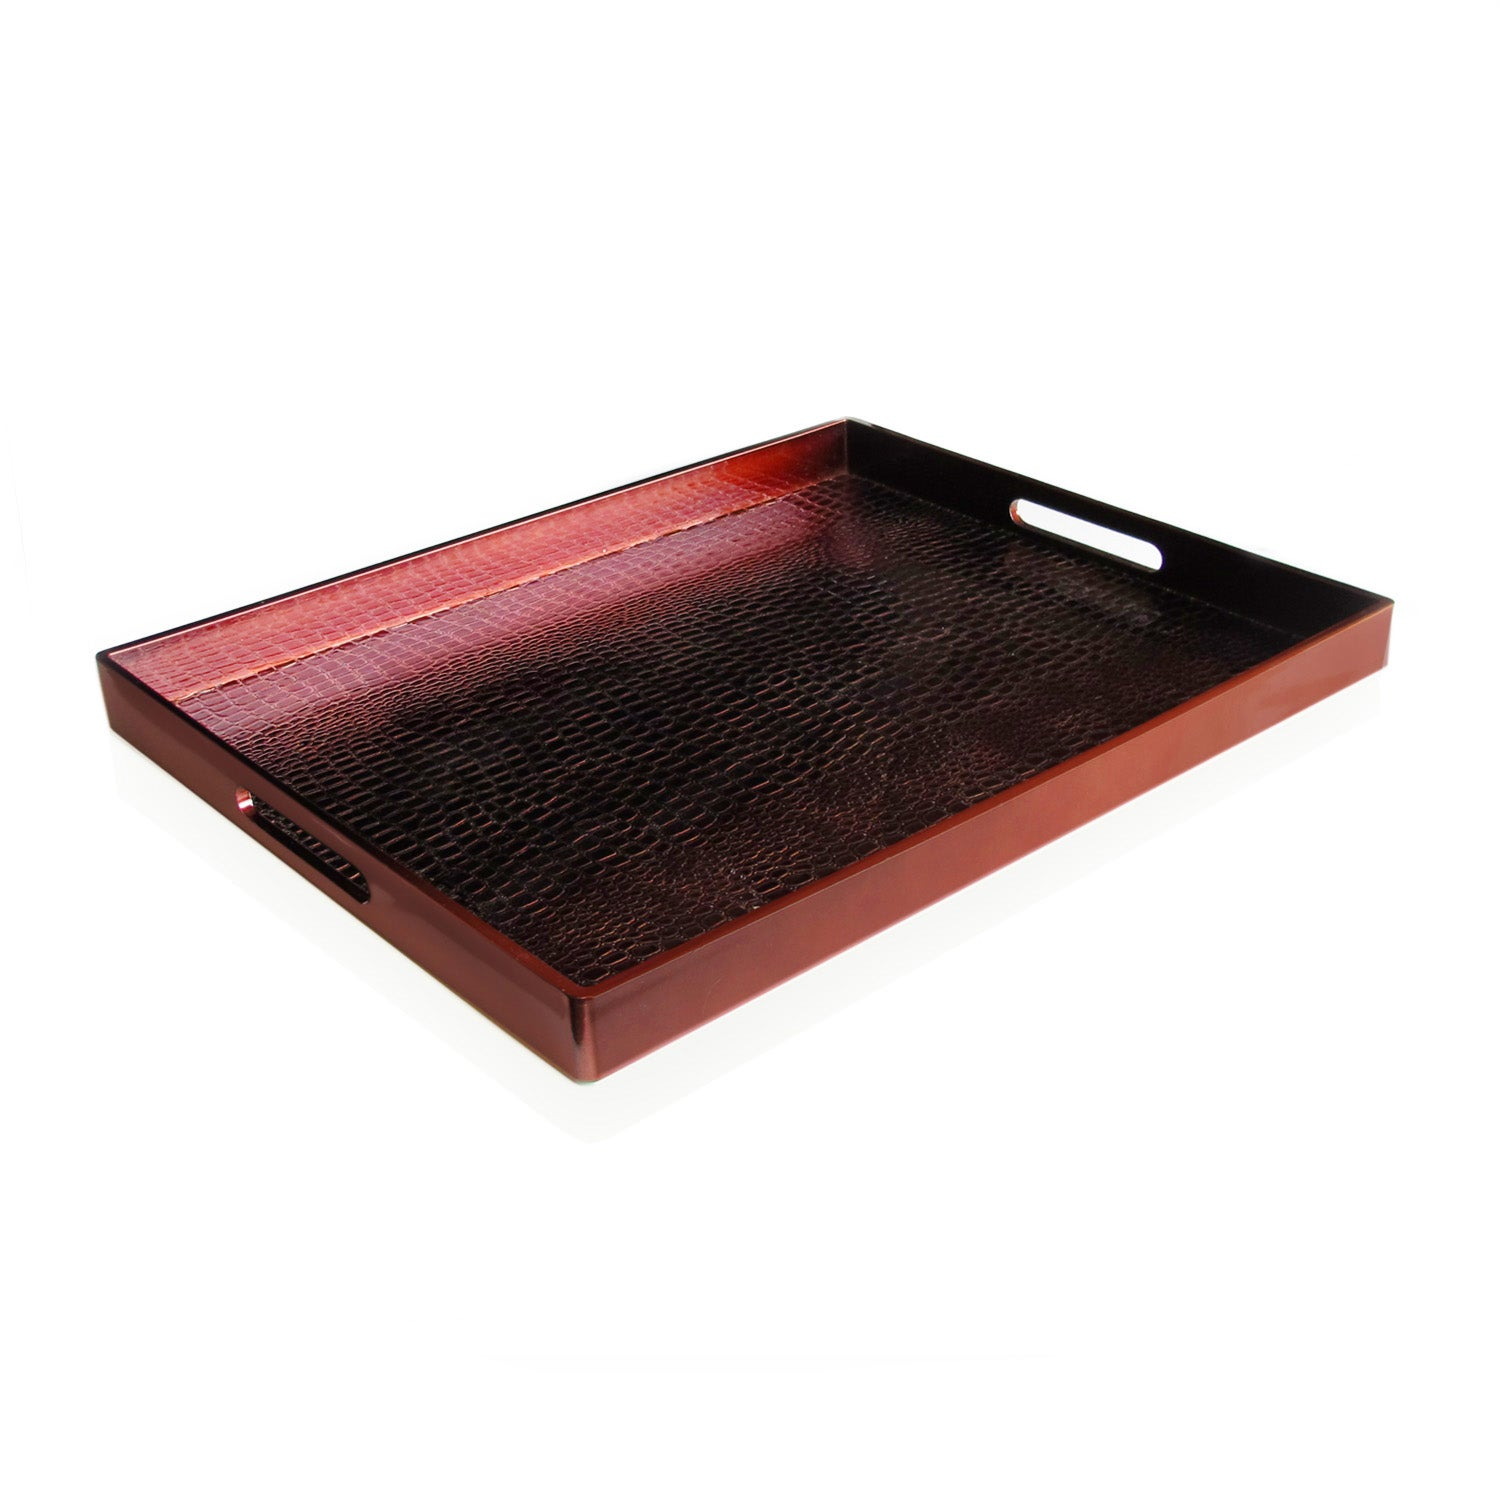 ChargeIt! by Jay Alligator Rectangular Tray